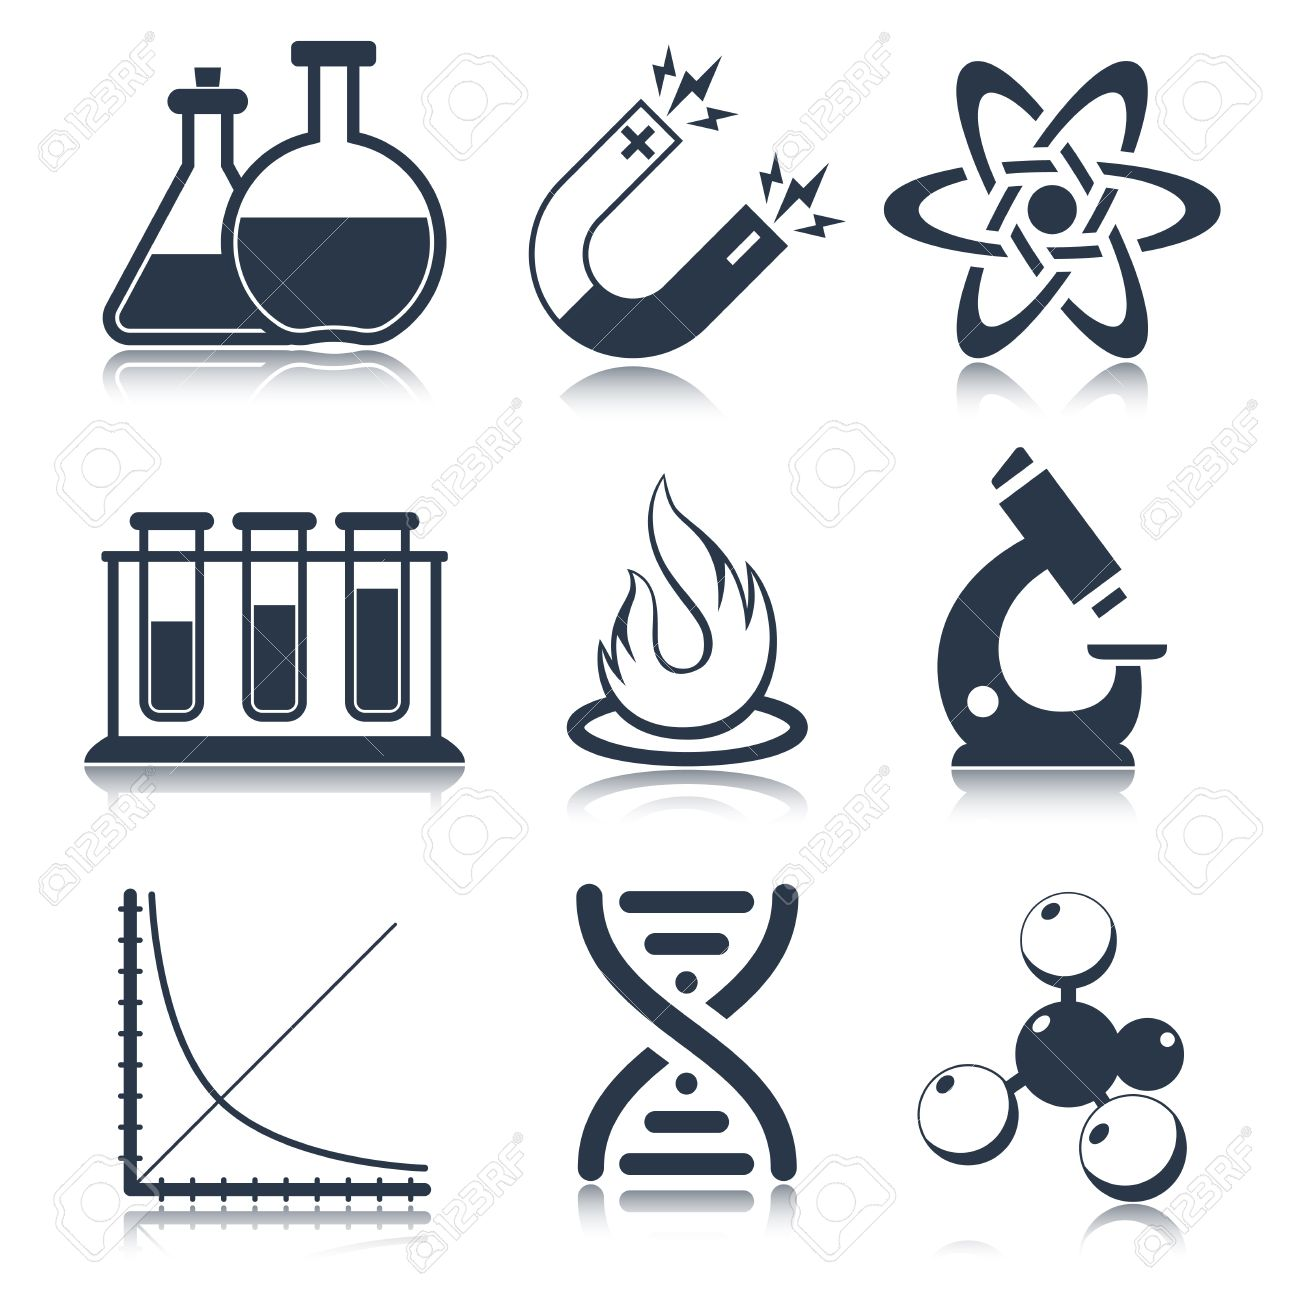 Physics Science Laboratory Equipment Black Education Icons Set Isolated Illustration Stock Vector